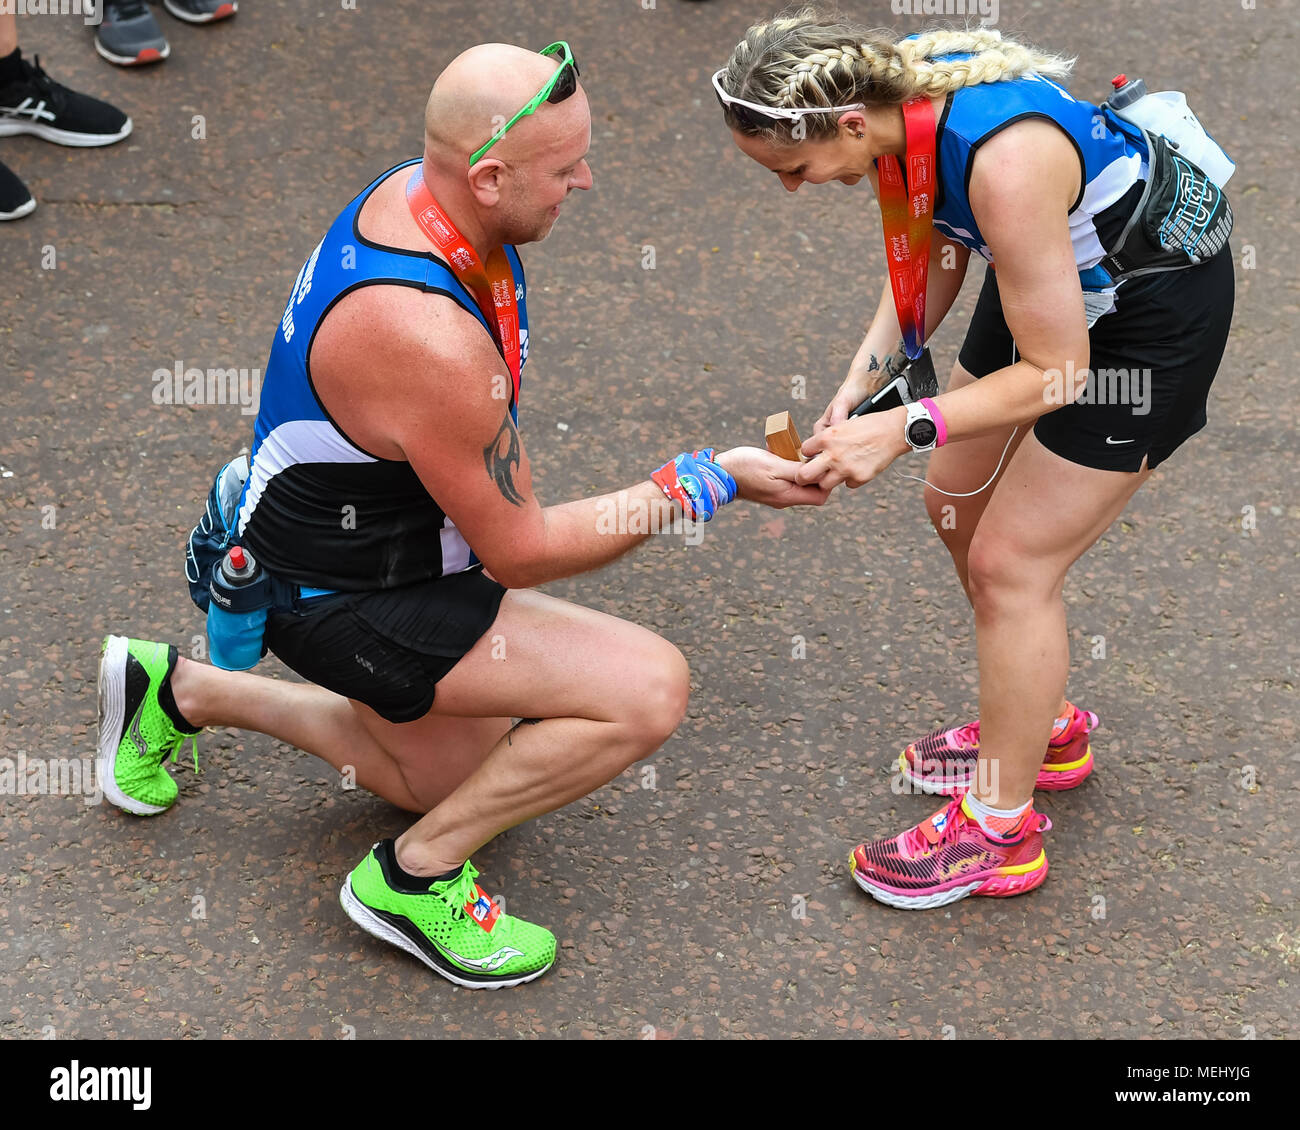 London, UK, 22 April 2018: Craig Dennen proposed to Lisa Lee at finish line during the 2018 Virgin Money London Marathon on Sunday, 22 April 2018. London, England. Credit: Taka G Wu Stock Photo